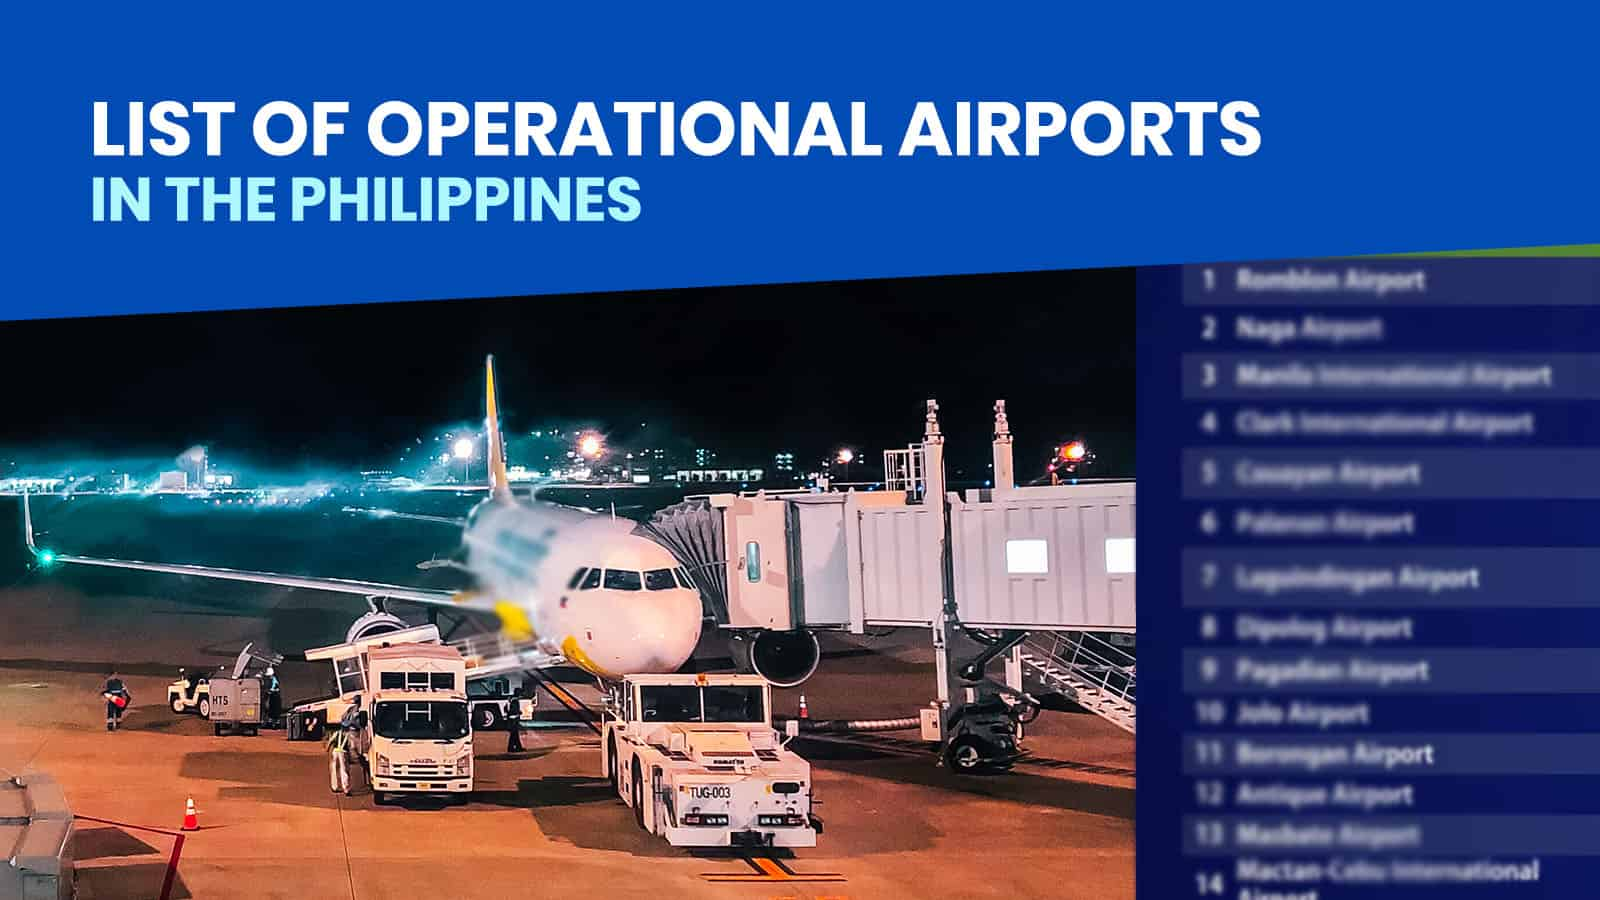 List of OPERATIONAL AIRPORTS IN THE PHILIPPINES: As of July 17, 2020